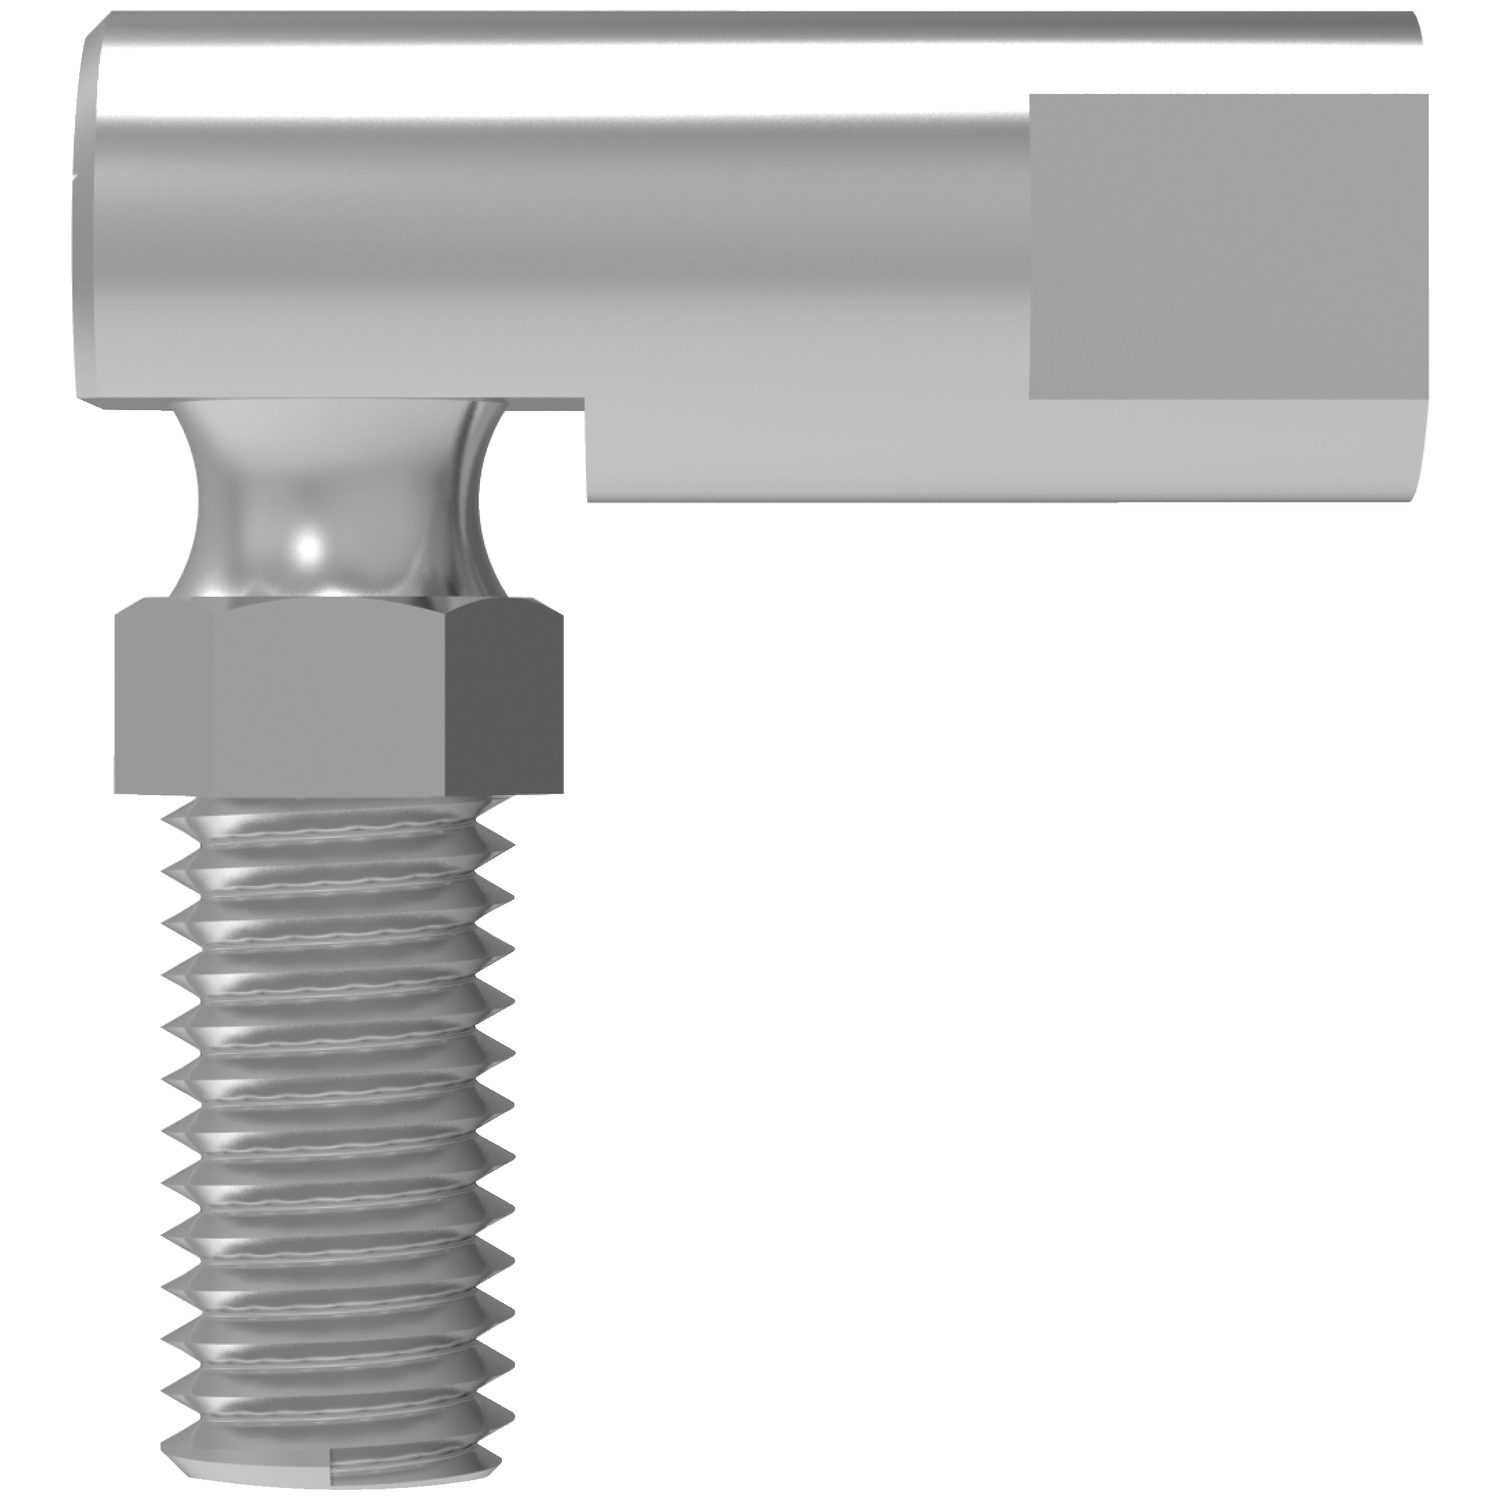 R3532 - Stainless DMG Ball and Socket Joint